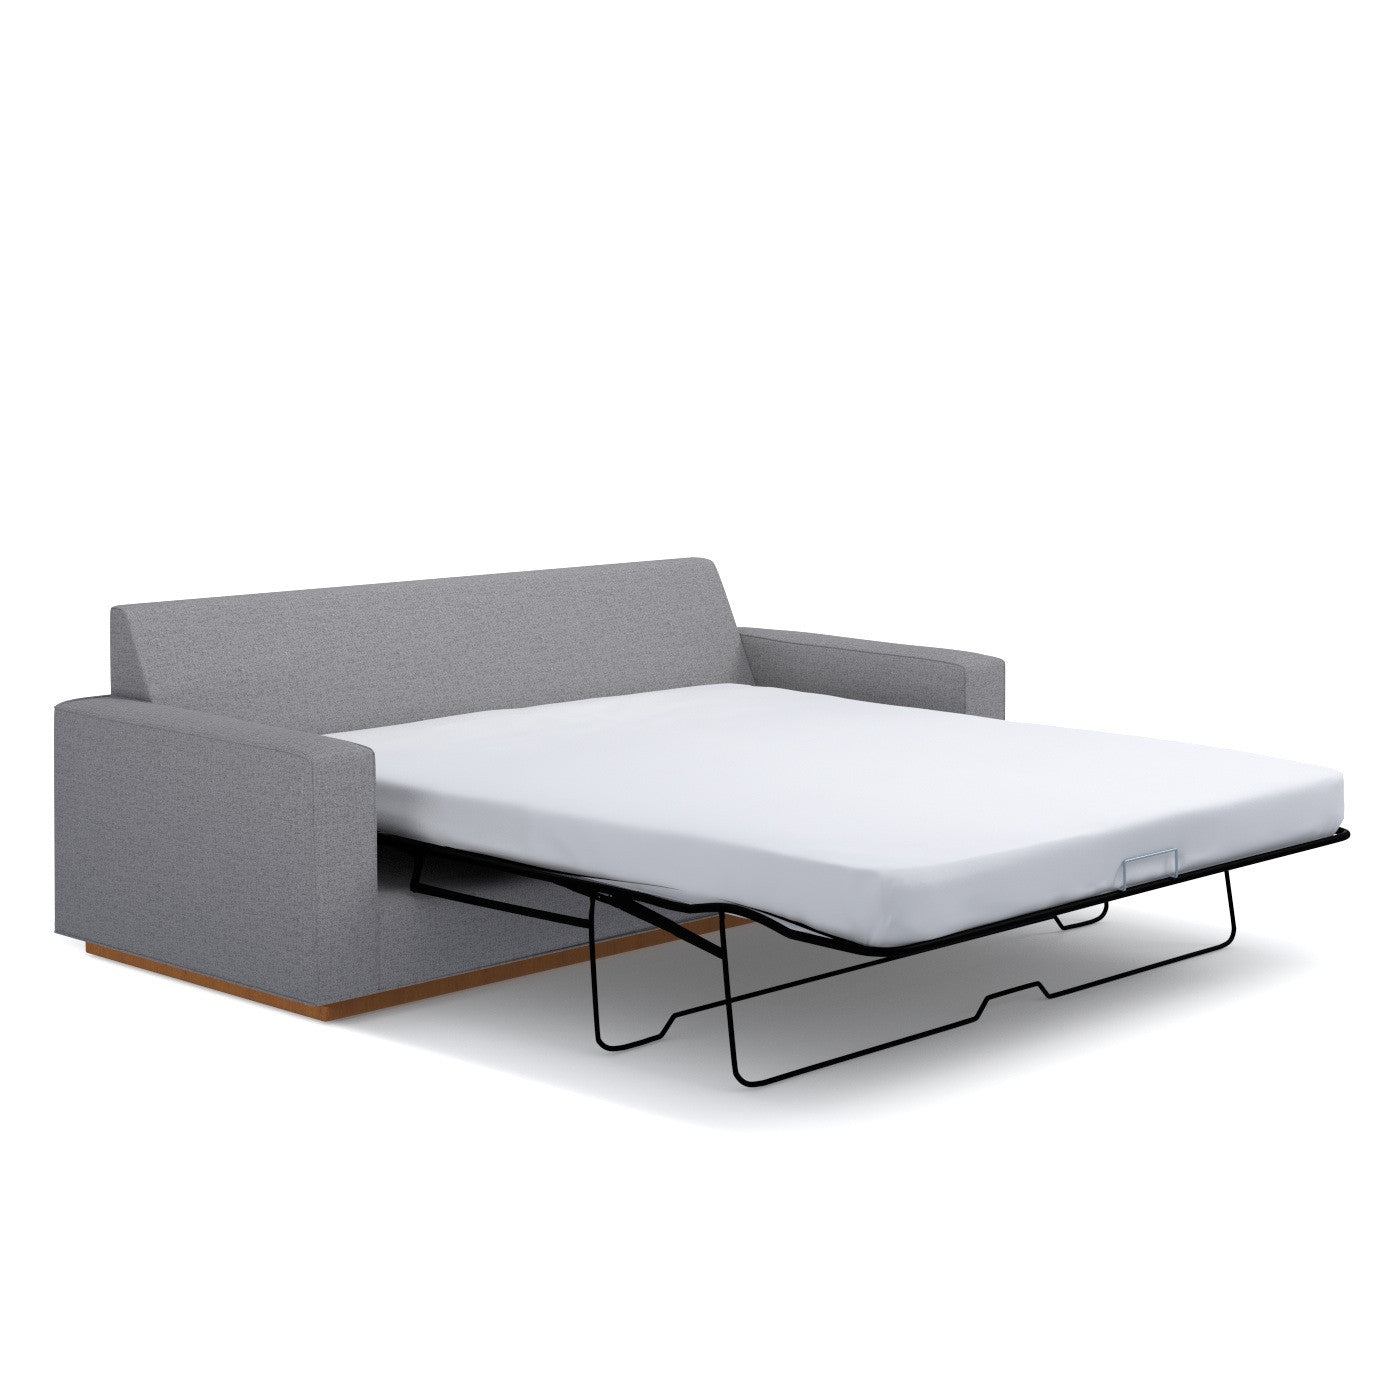 sleeper sofa or air mattress